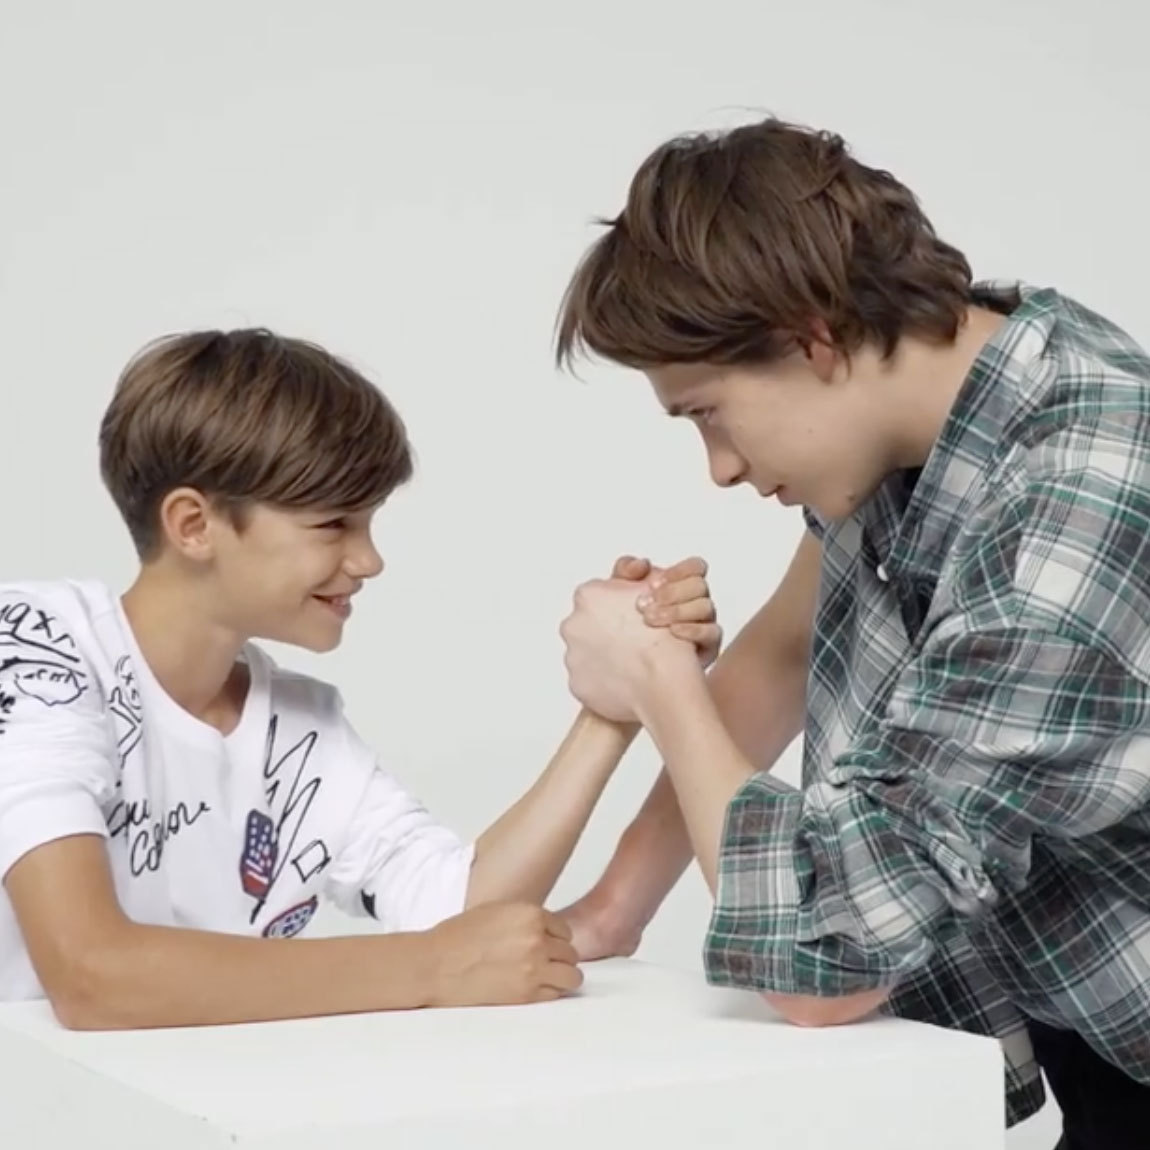 <b>He shares the spotlight</b>